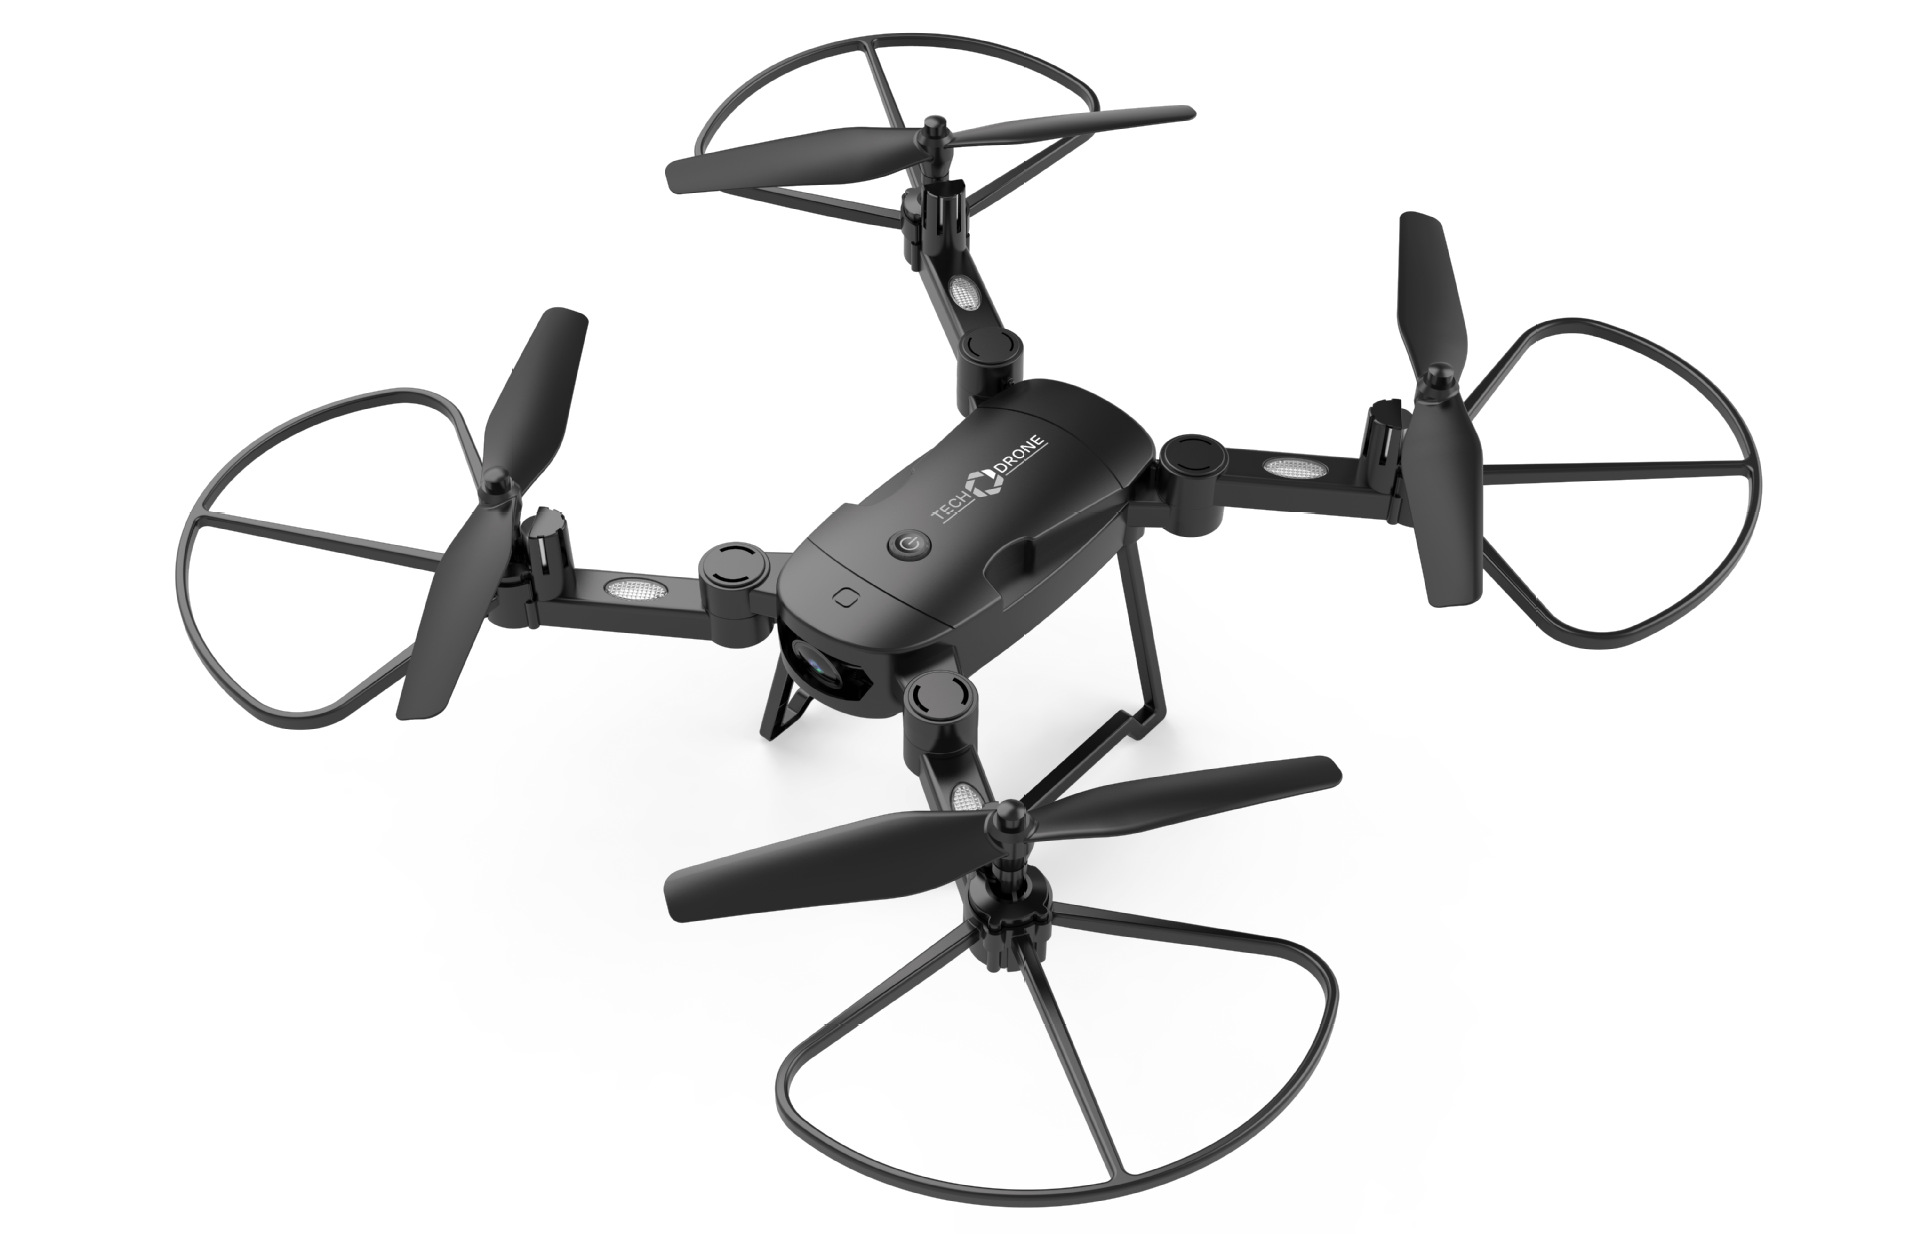 Lh x24wf200 Aerial Photography High definition 2 Million Webcam Foldable with Set High Unmanned Aerial Vehicle Aircraft|  - title=